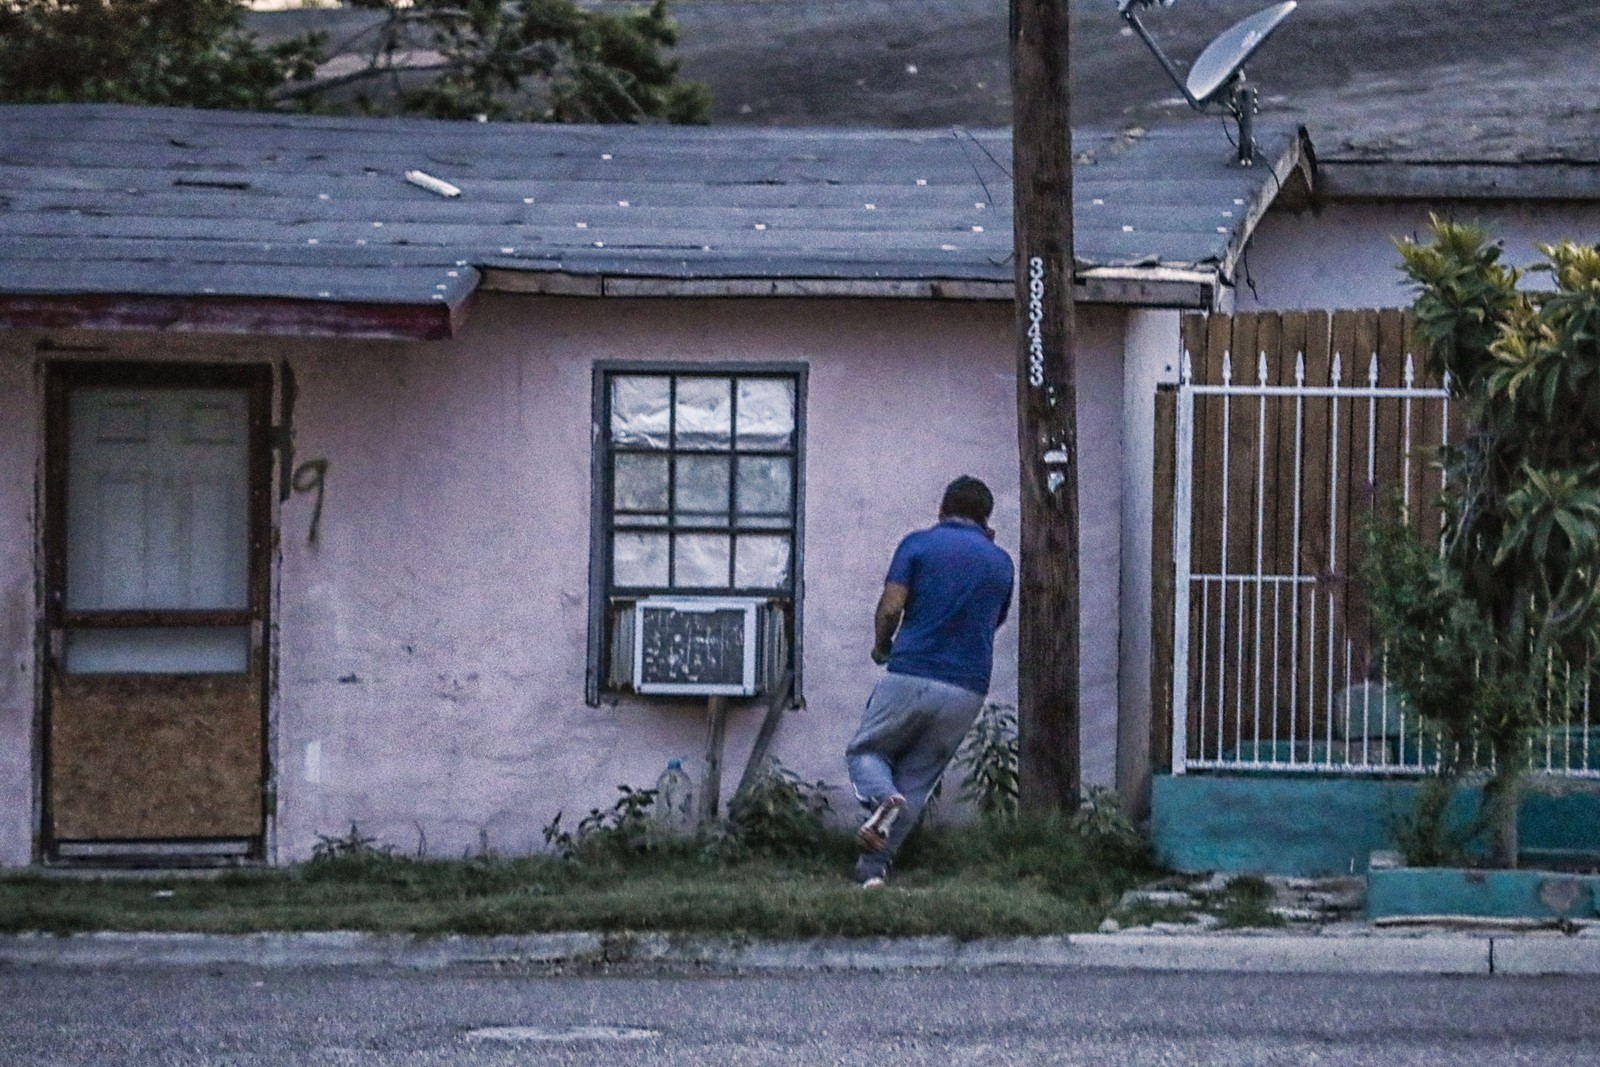 Appearing damp and lost, the man dashes toward colonia De La Cruz's pink apartments — a complex reputed by some to be a safe house for migrants. — Photograph: Robert Gauthier/Los Angeles Times.